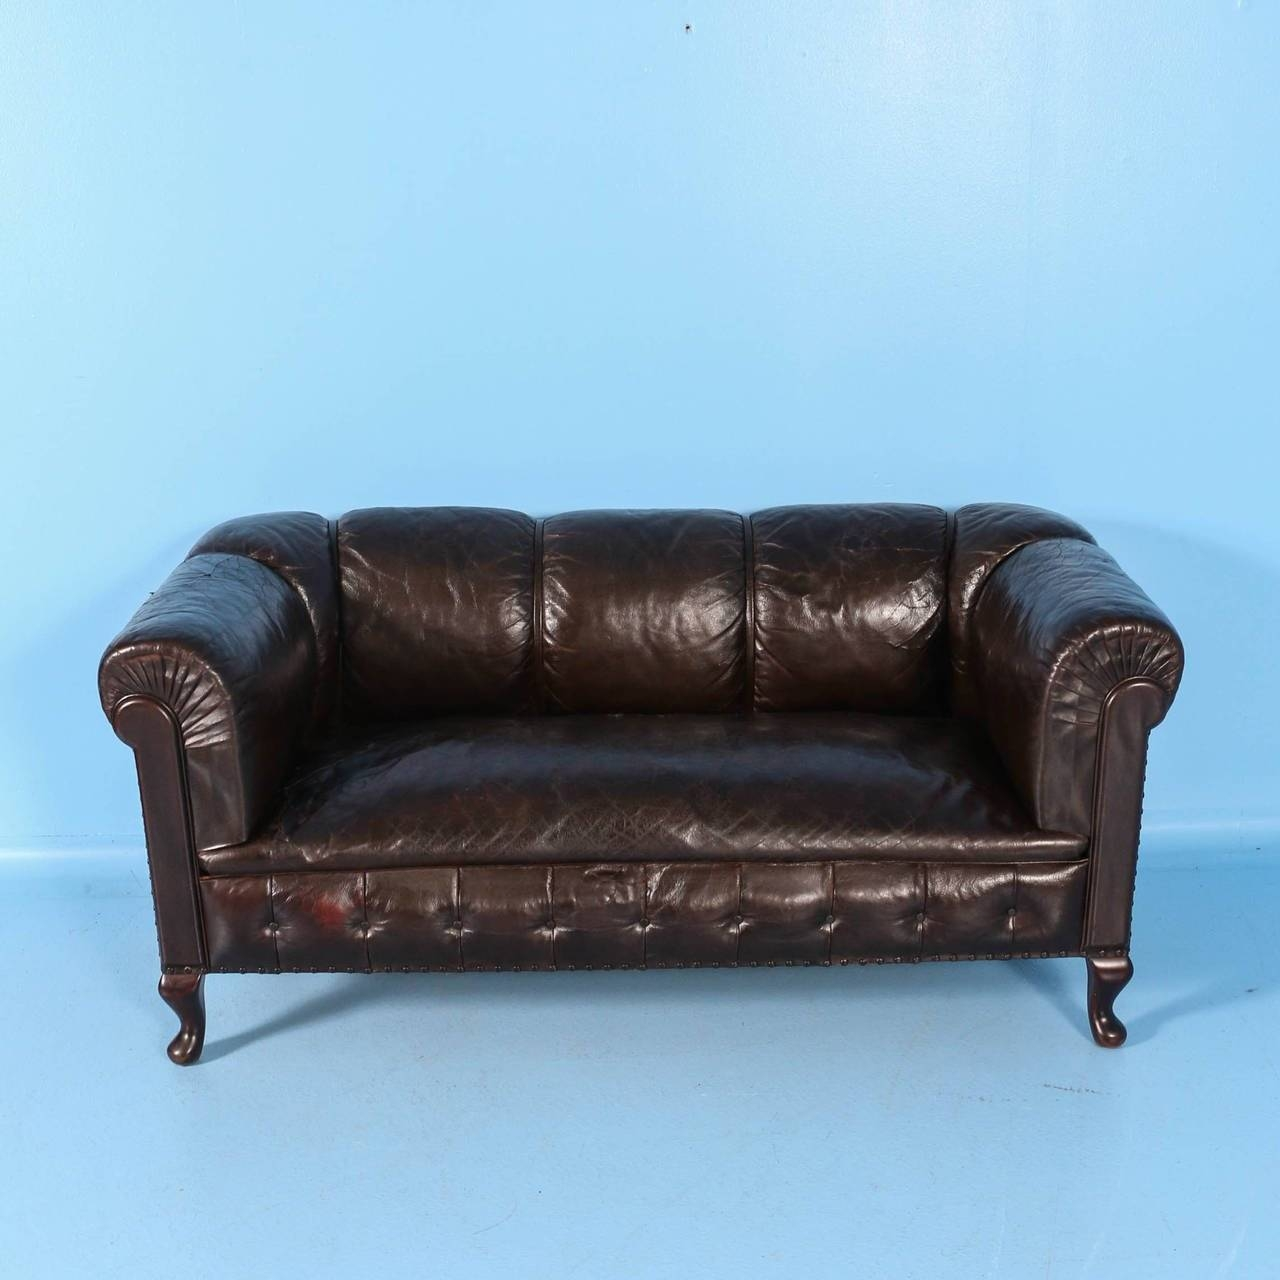 Small Vintage Chesterfield Sofa, England, Circa 1920 - 1940 At 1Stdibs regarding Vintage Chesterfield Sofas (Image 5 of 30)